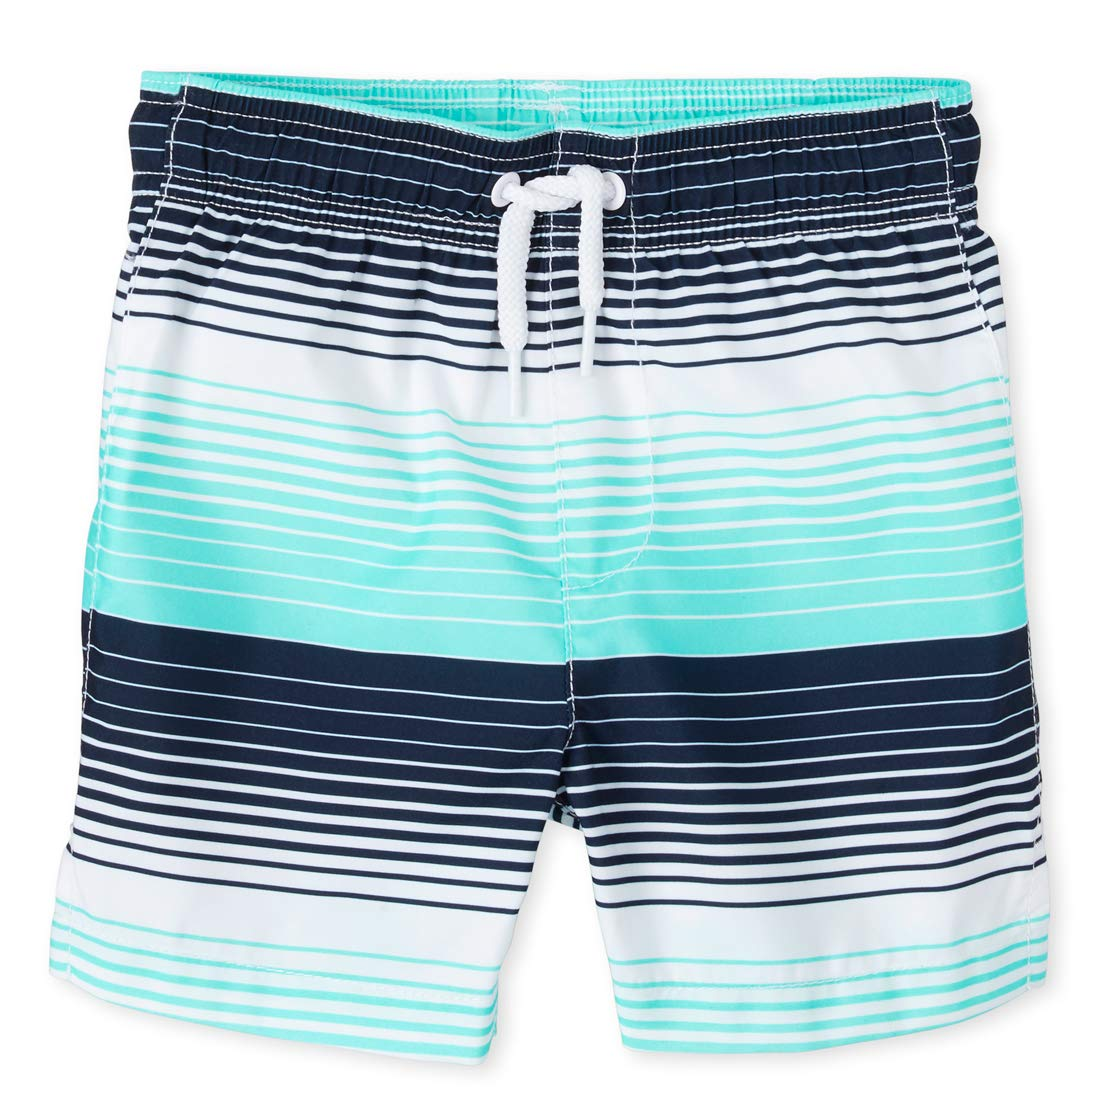 The Childrens Place Boys Graphic Printed Swim Trunks